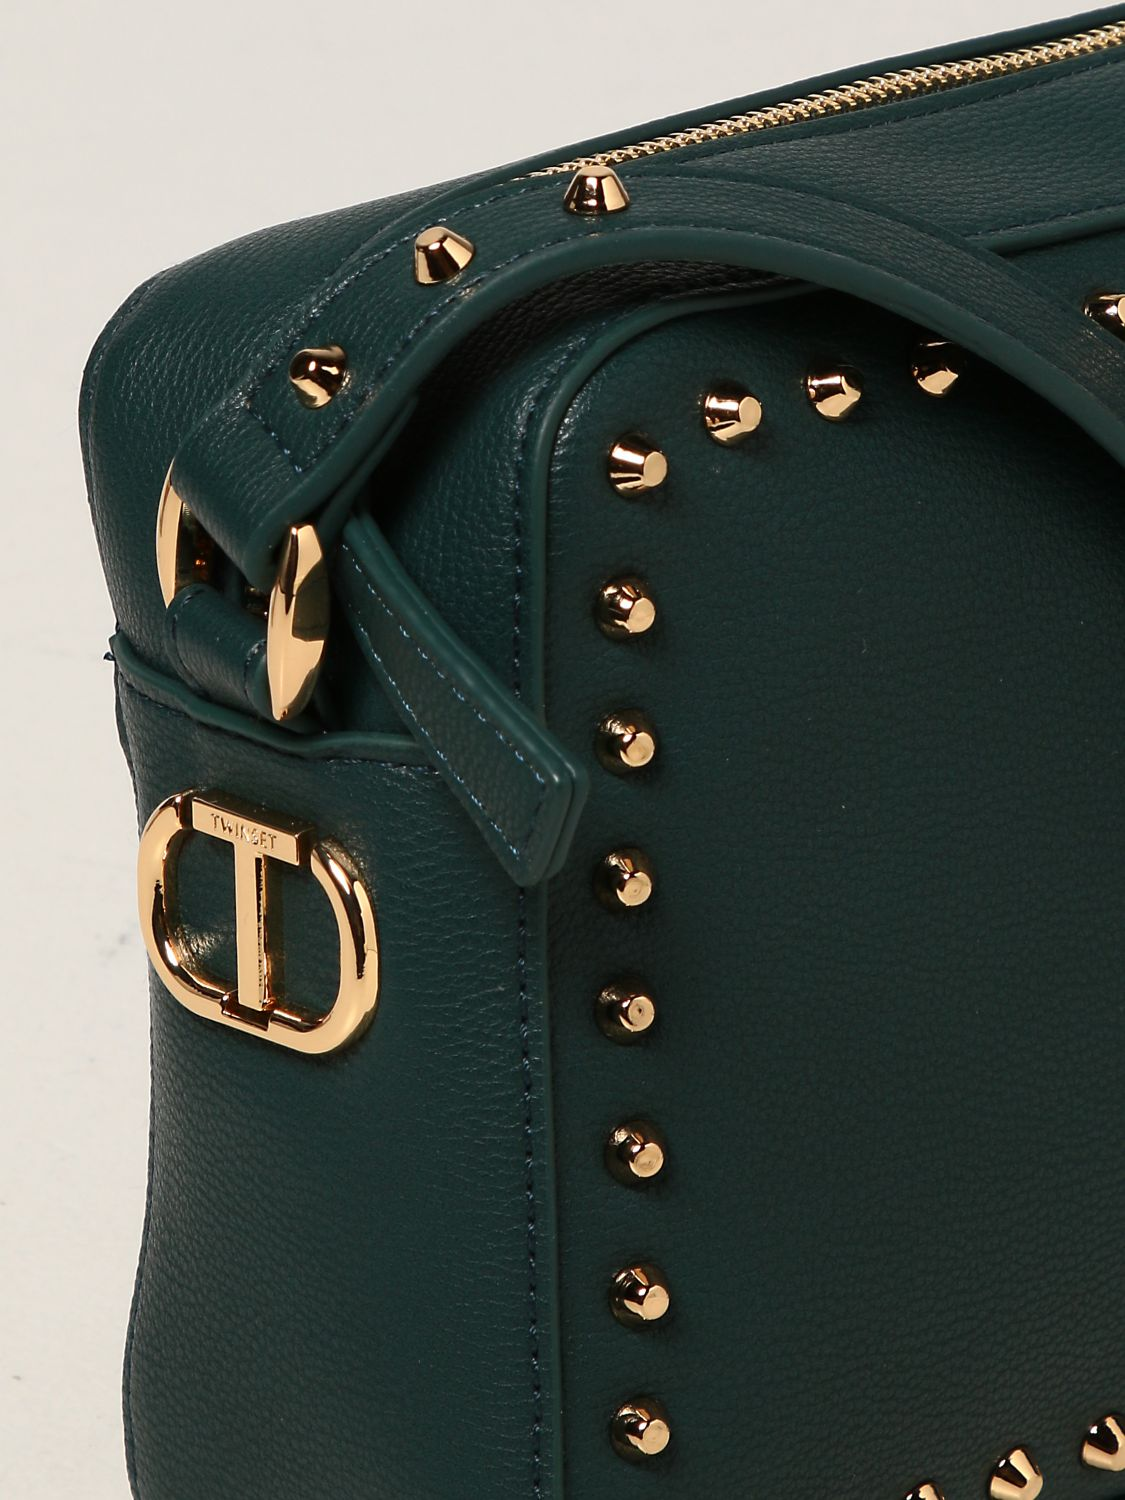 SHOPPING ON LINE TWINSET MILANO BORSA A TRACOLLA CON BORCHIE NEW COLLECTION PREVIEW FALL WINTER 2022